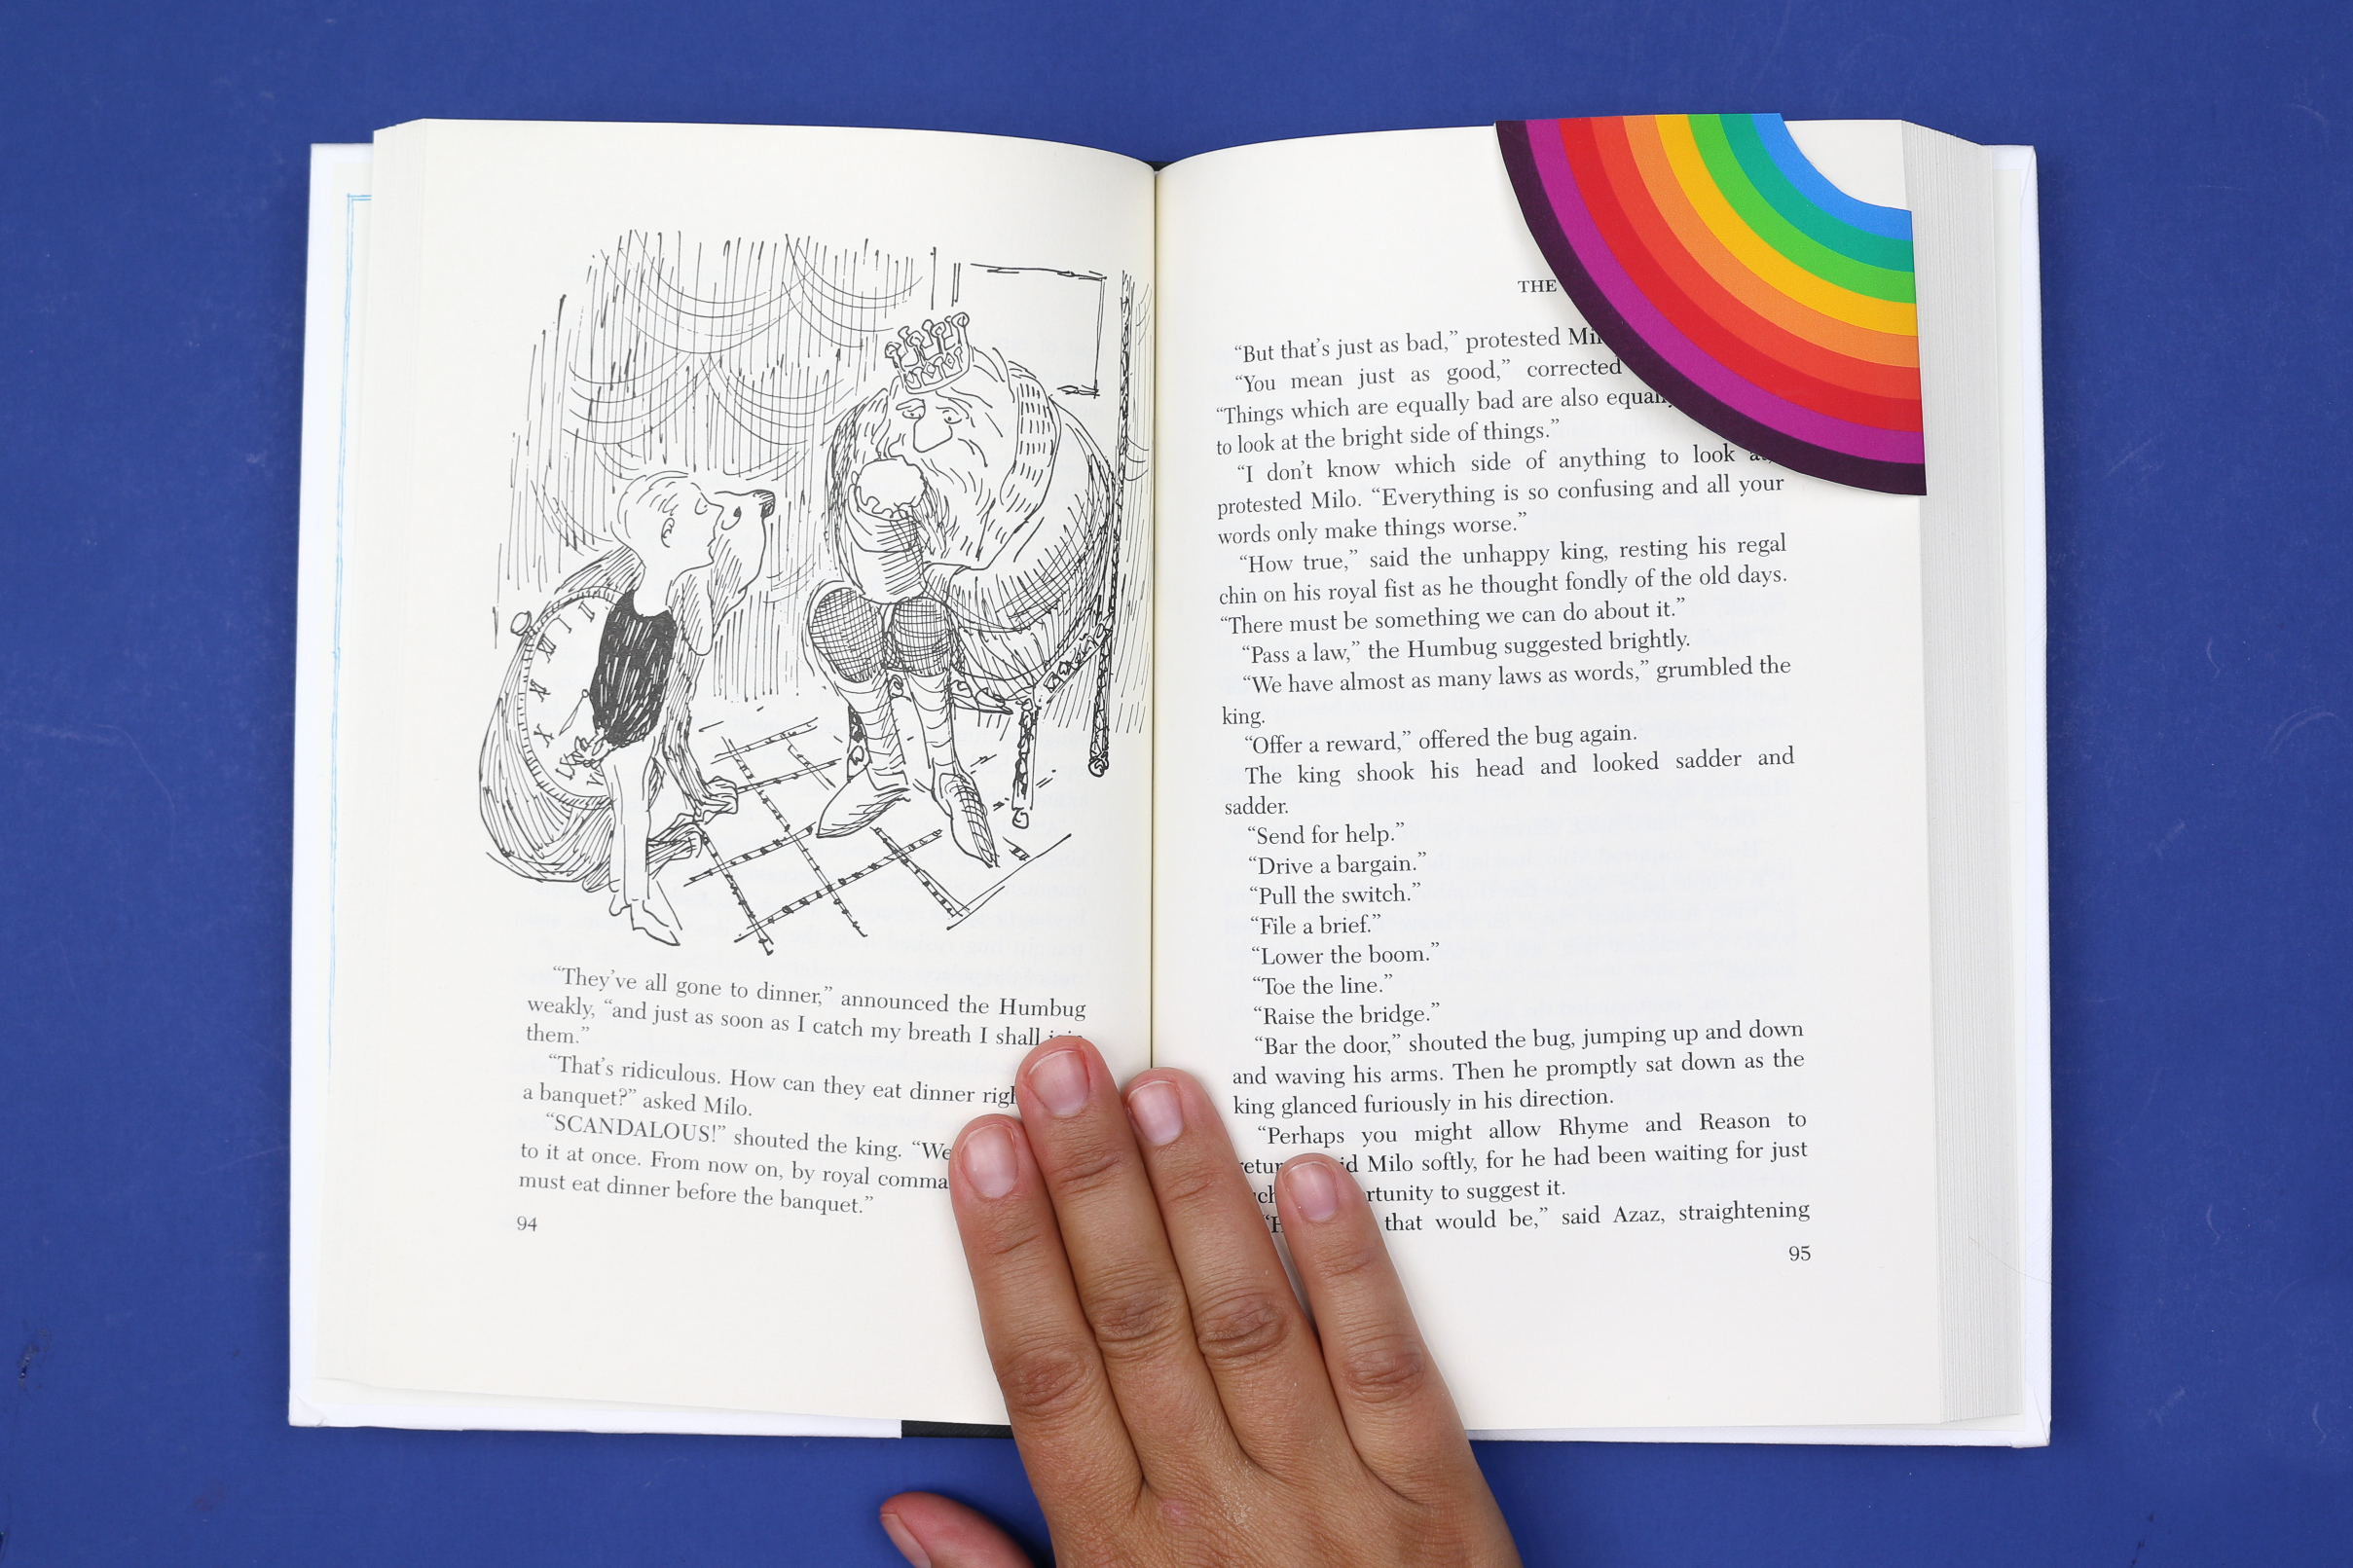 hand holding a book with a rainbow corner bookmark